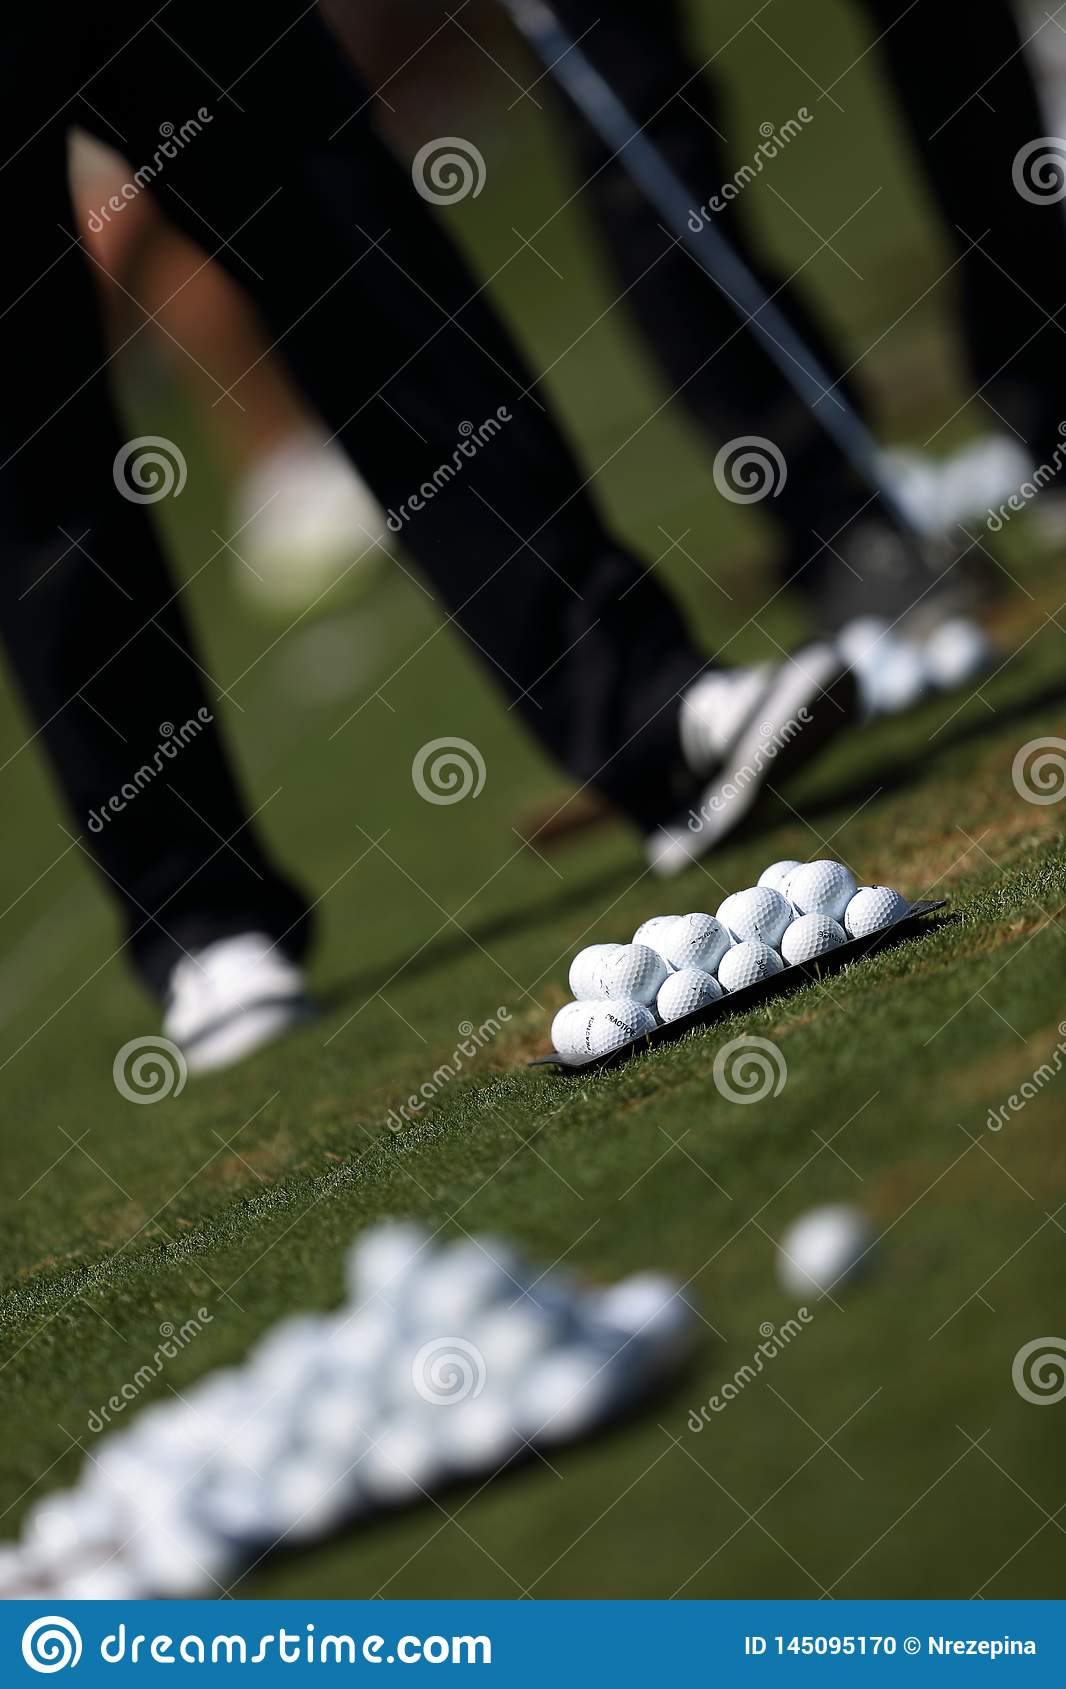 Golfer playing golf on a golf course